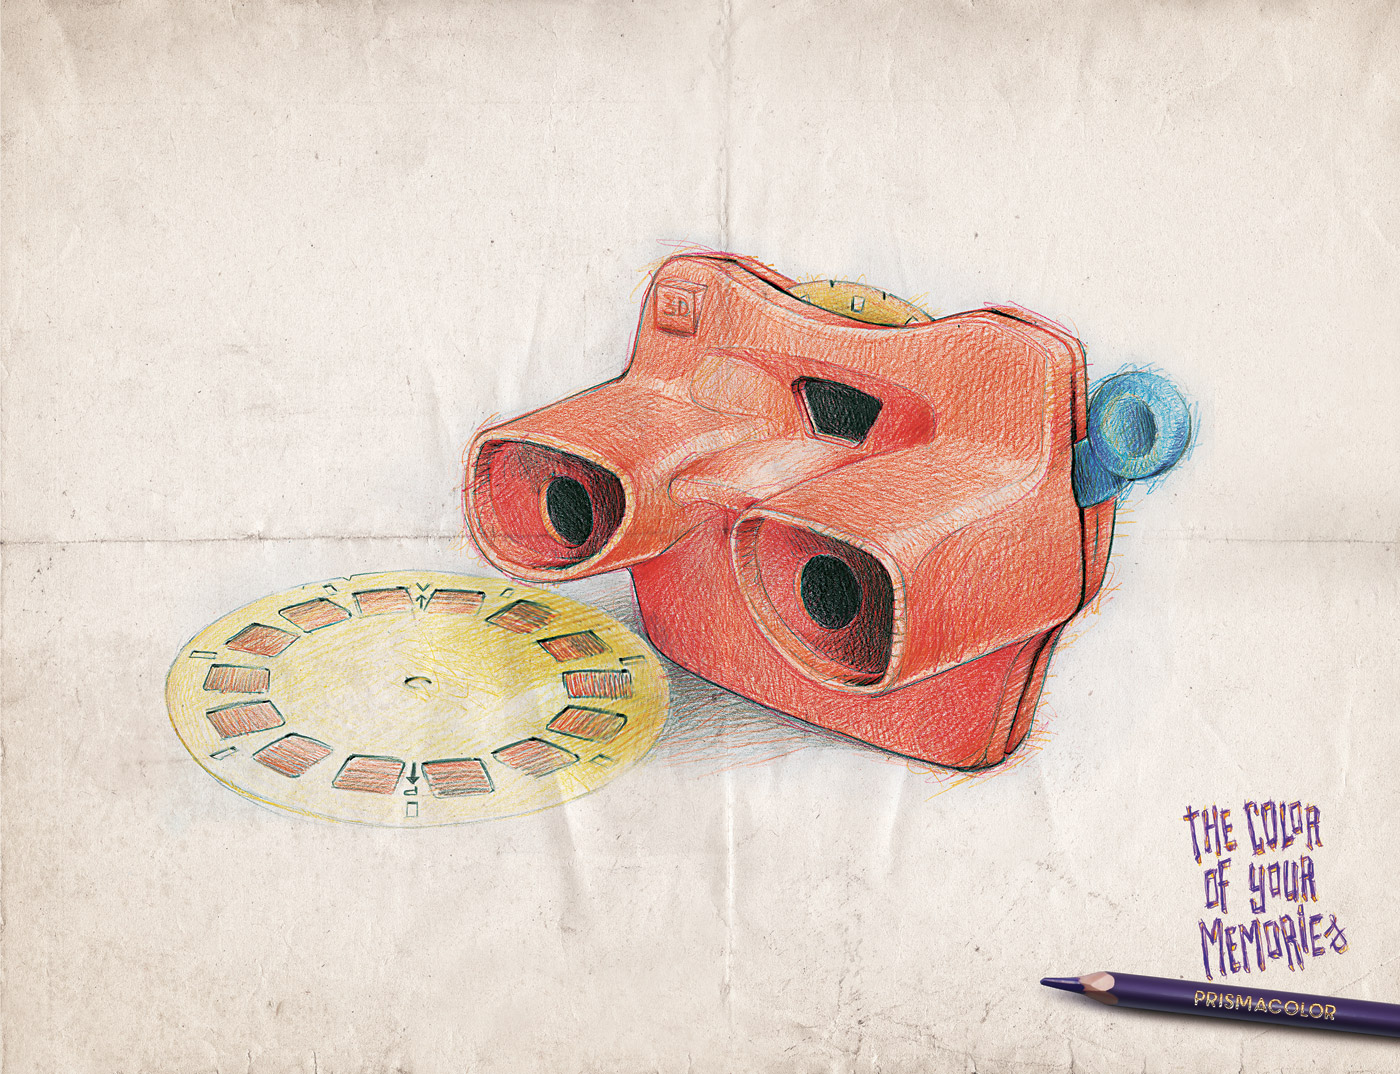 Prismacolor Print Advert By Y&R: View master | Ads of the World™